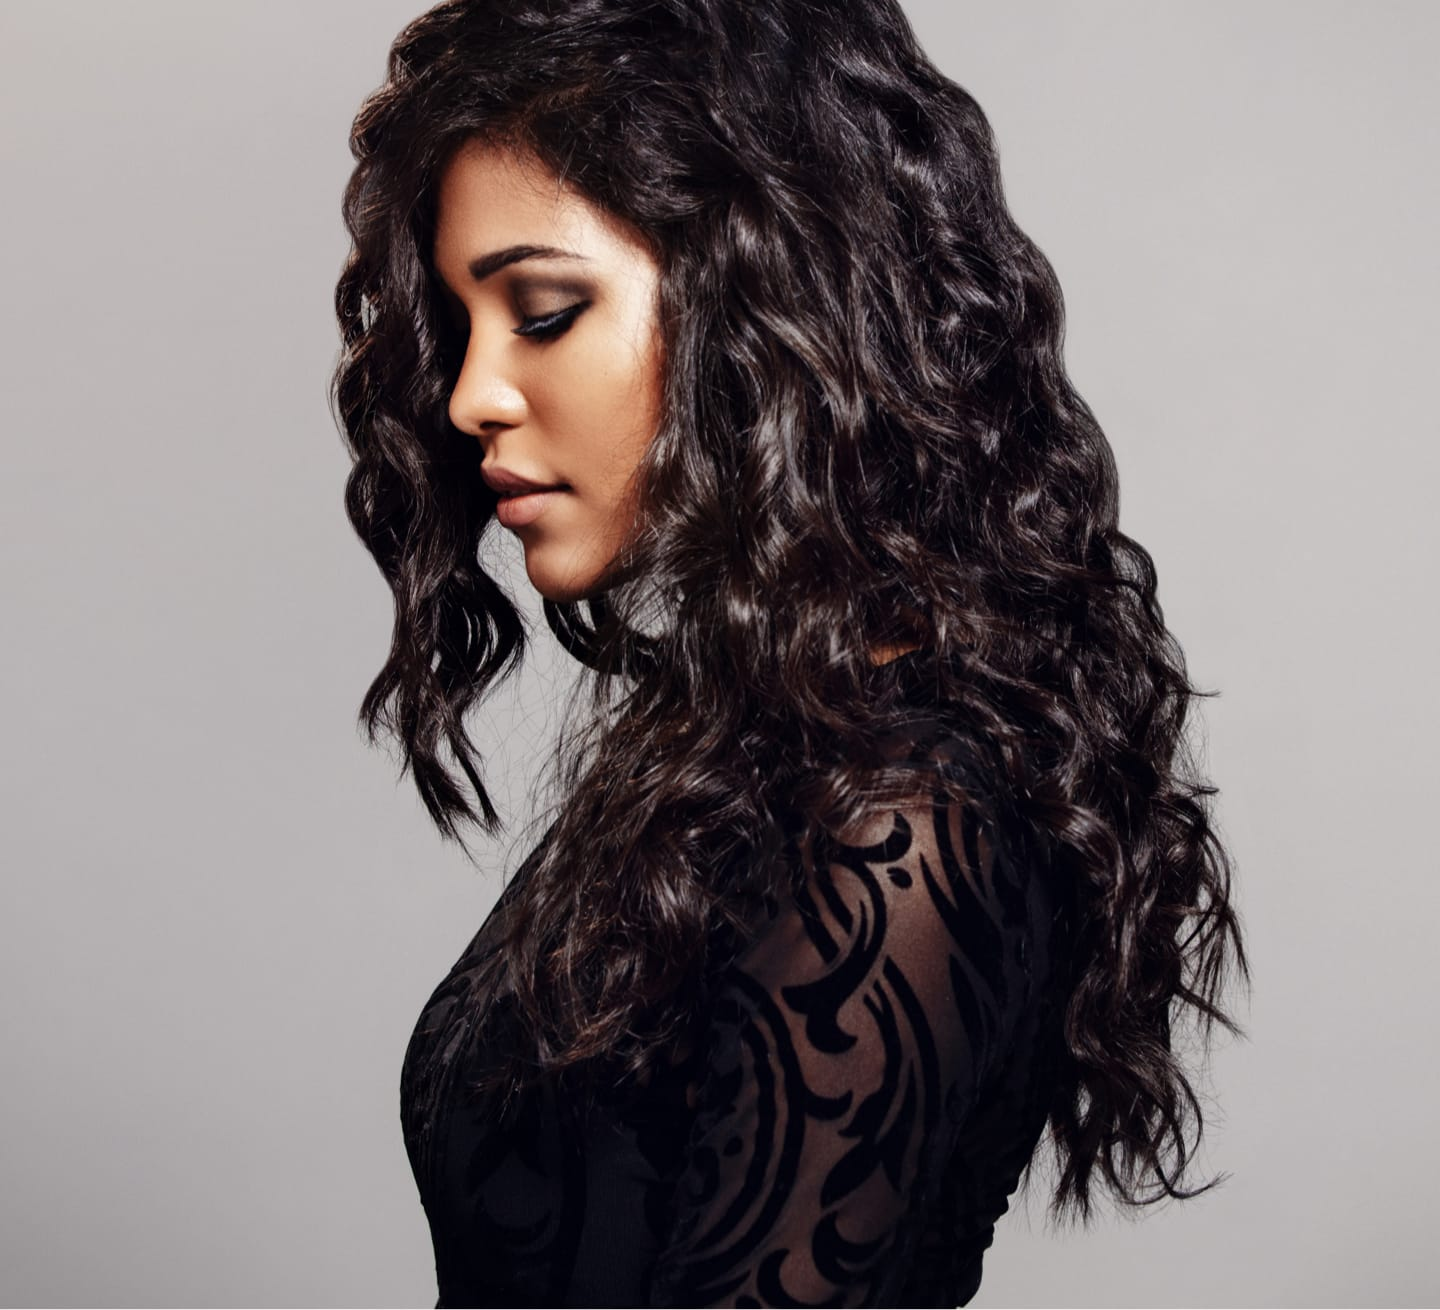 profile of model with wavy hair